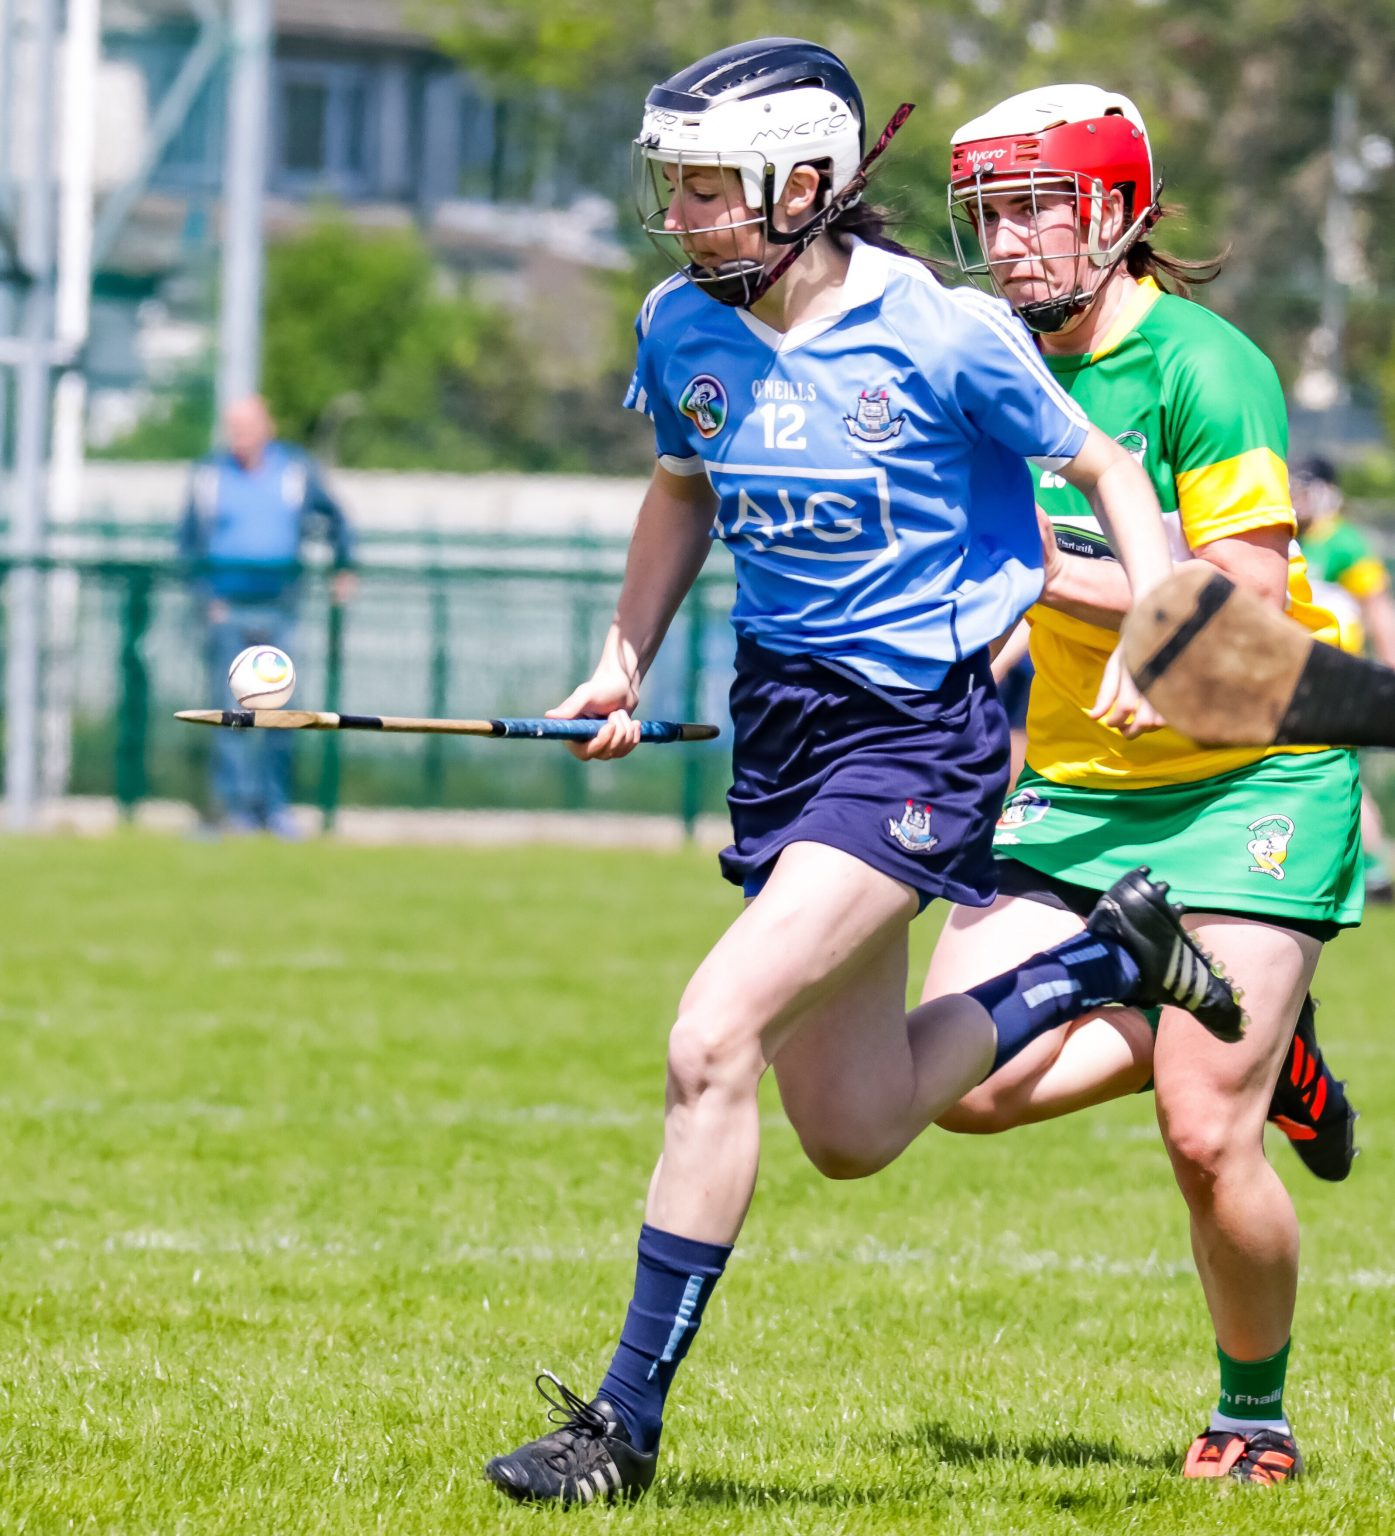 Dublin Camogie Player In A Sky Blue Jersey Running with a white ball balancing on a hurl